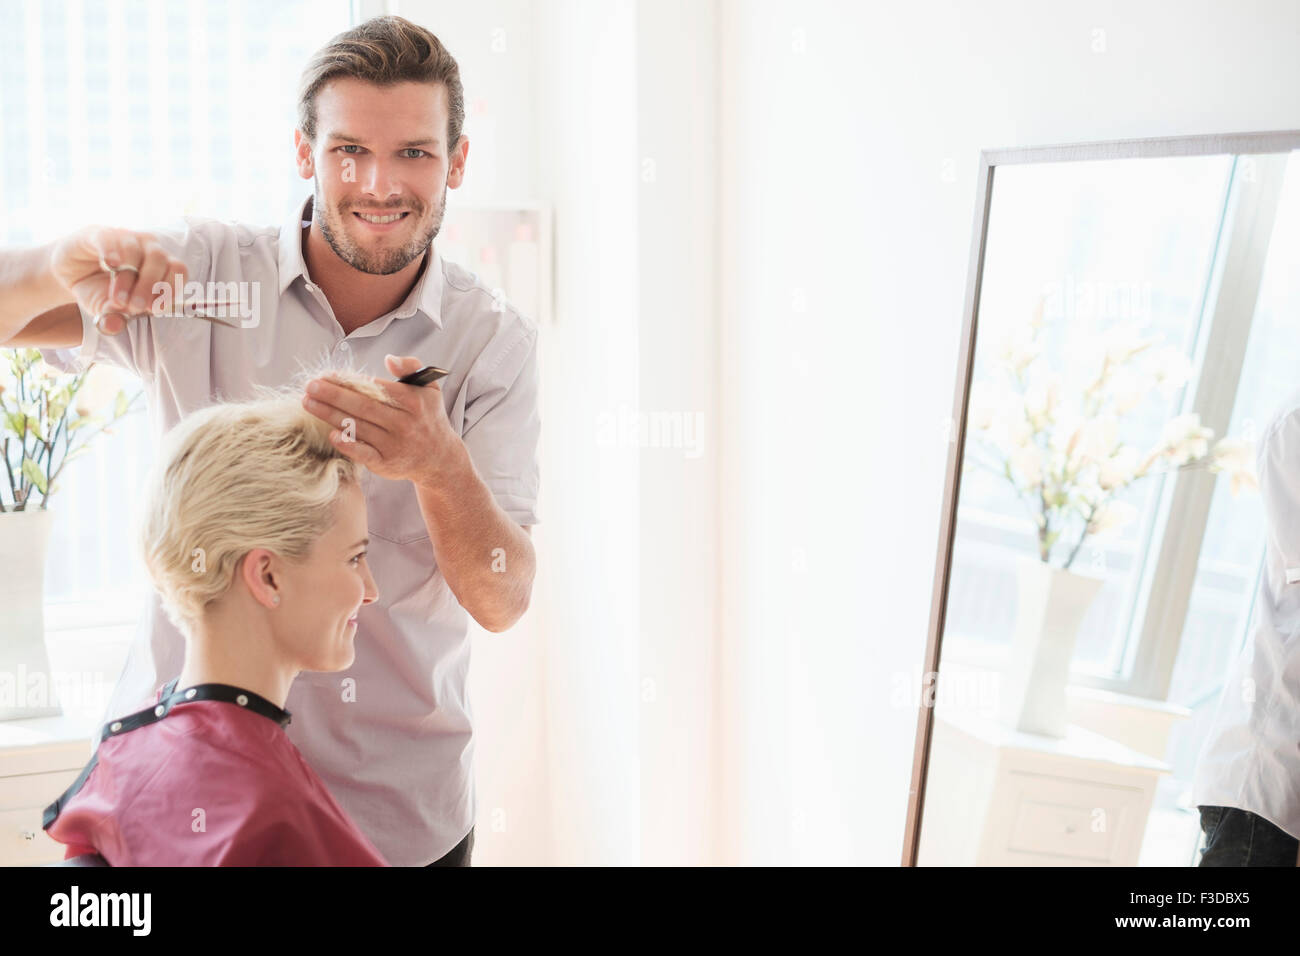 Portrait of hairdresser cutting woman's hair - Stock Image